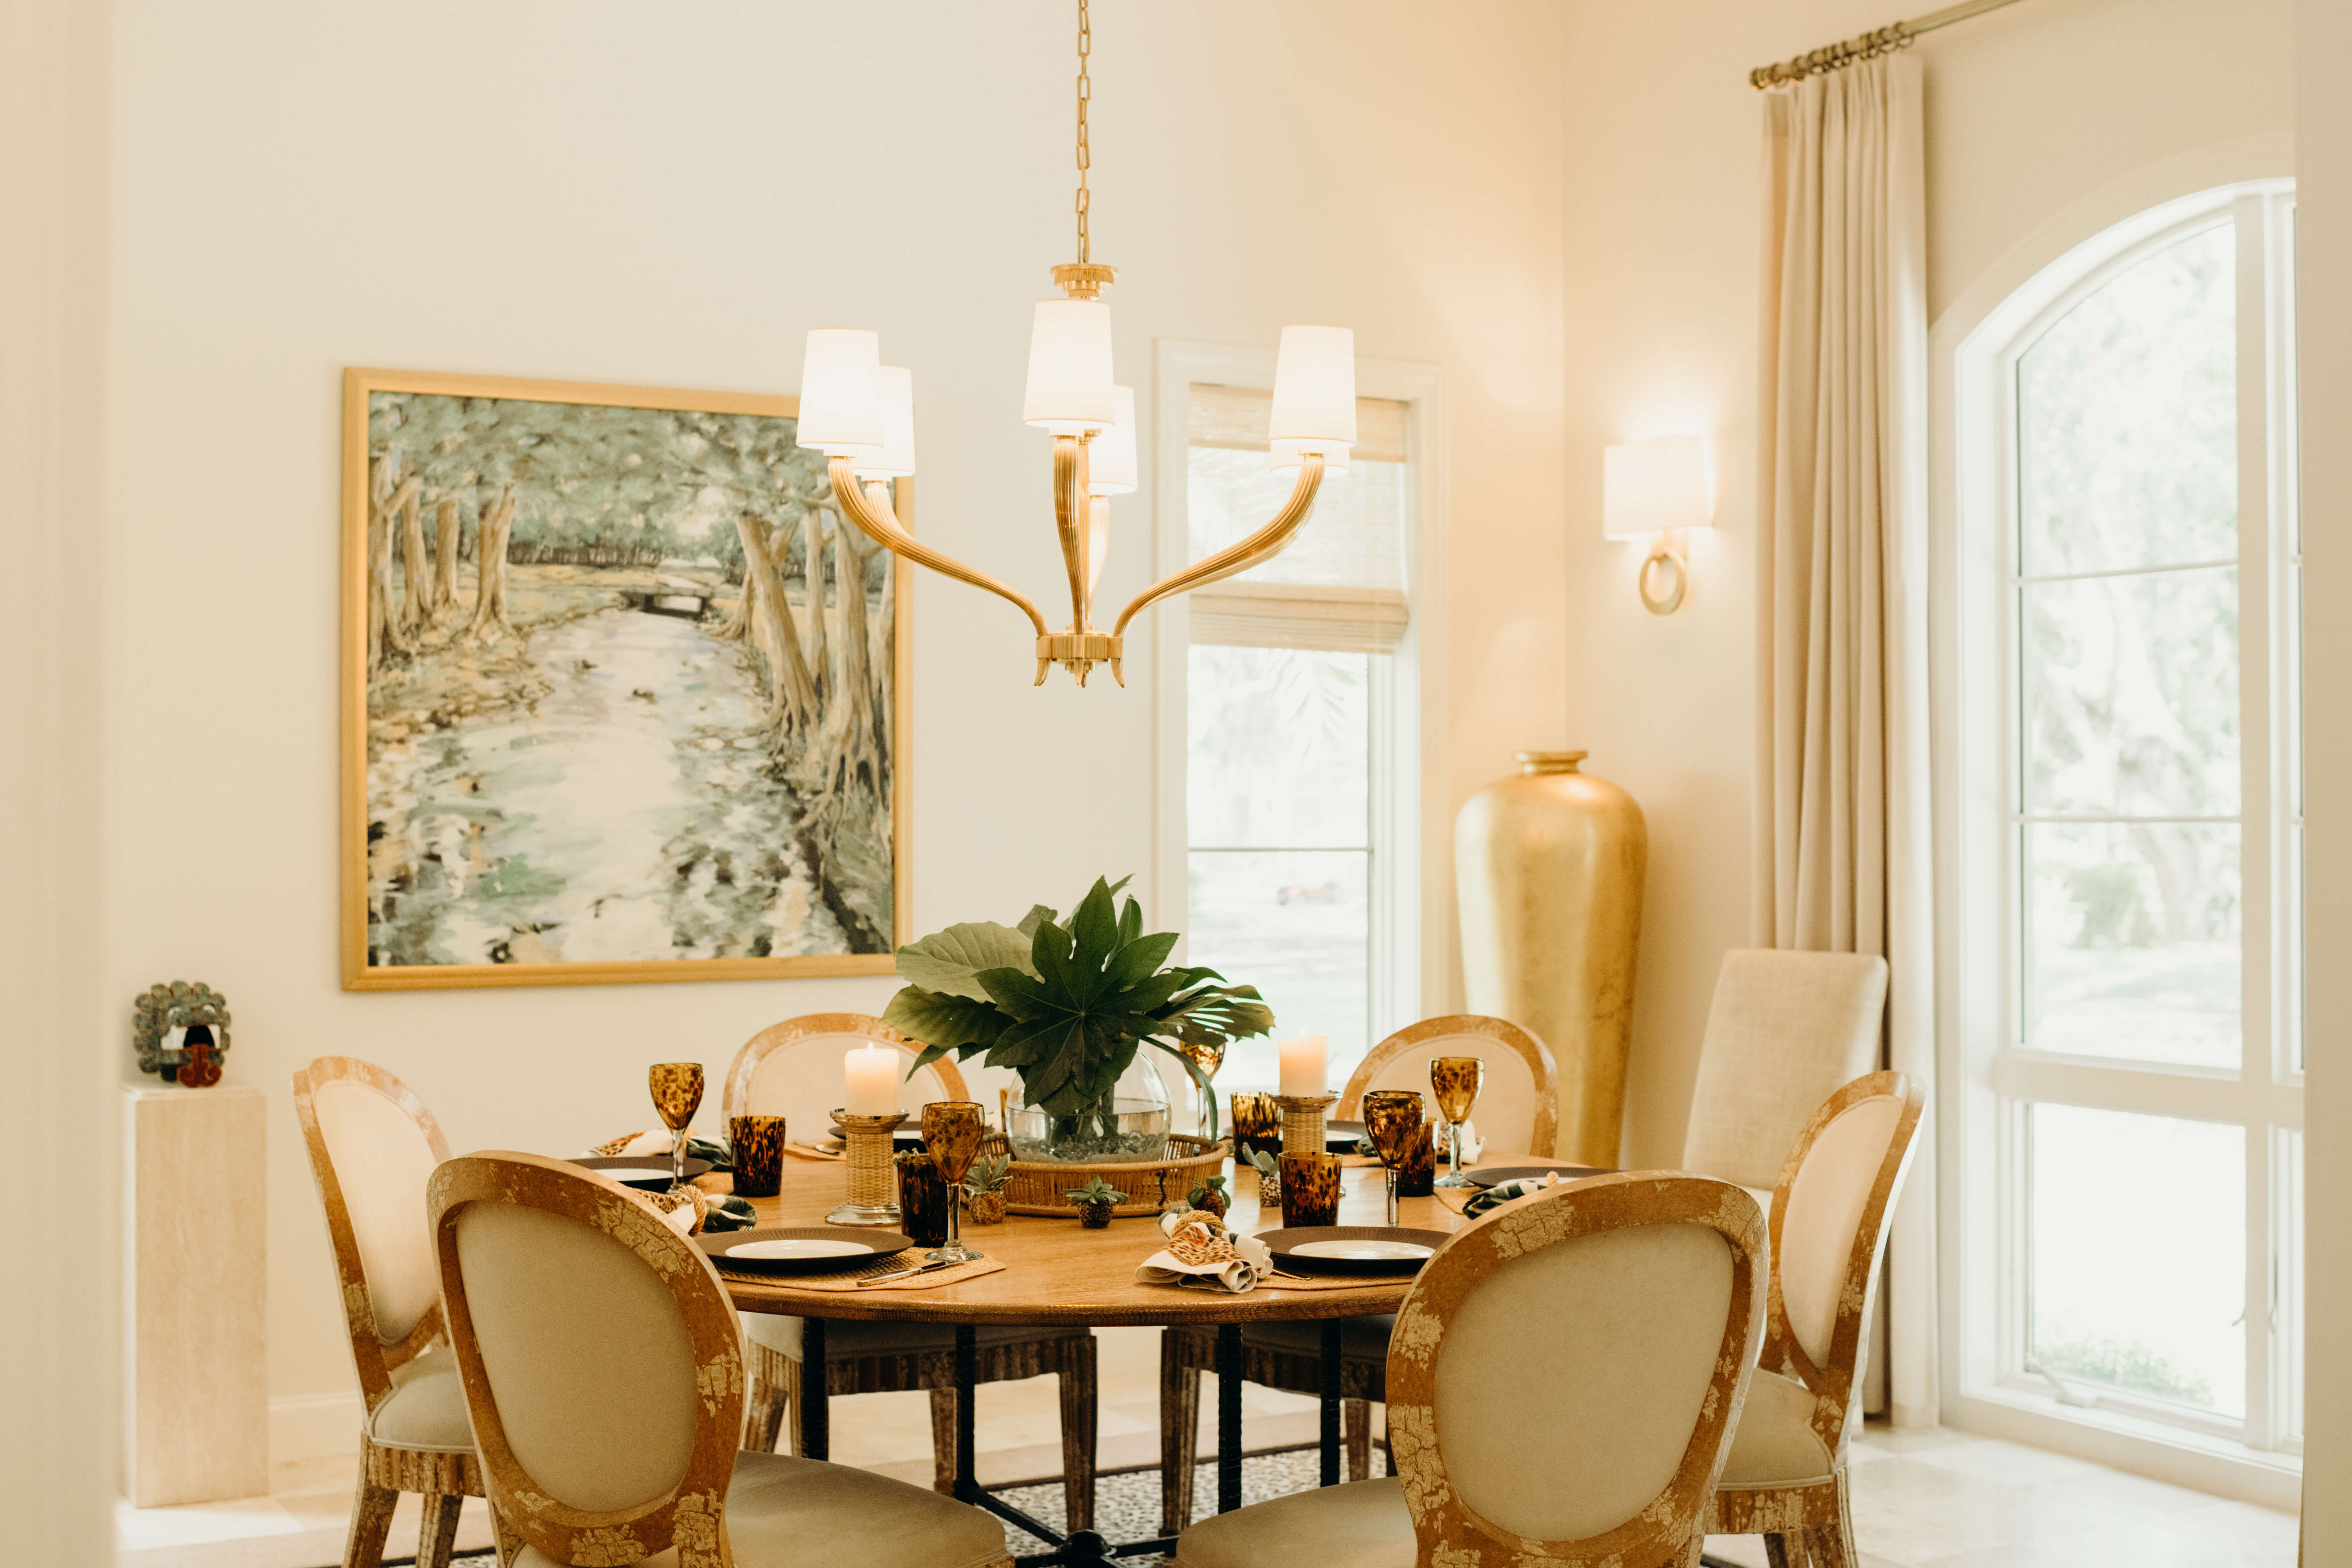 Fontaine dining room photo by Page Teahan